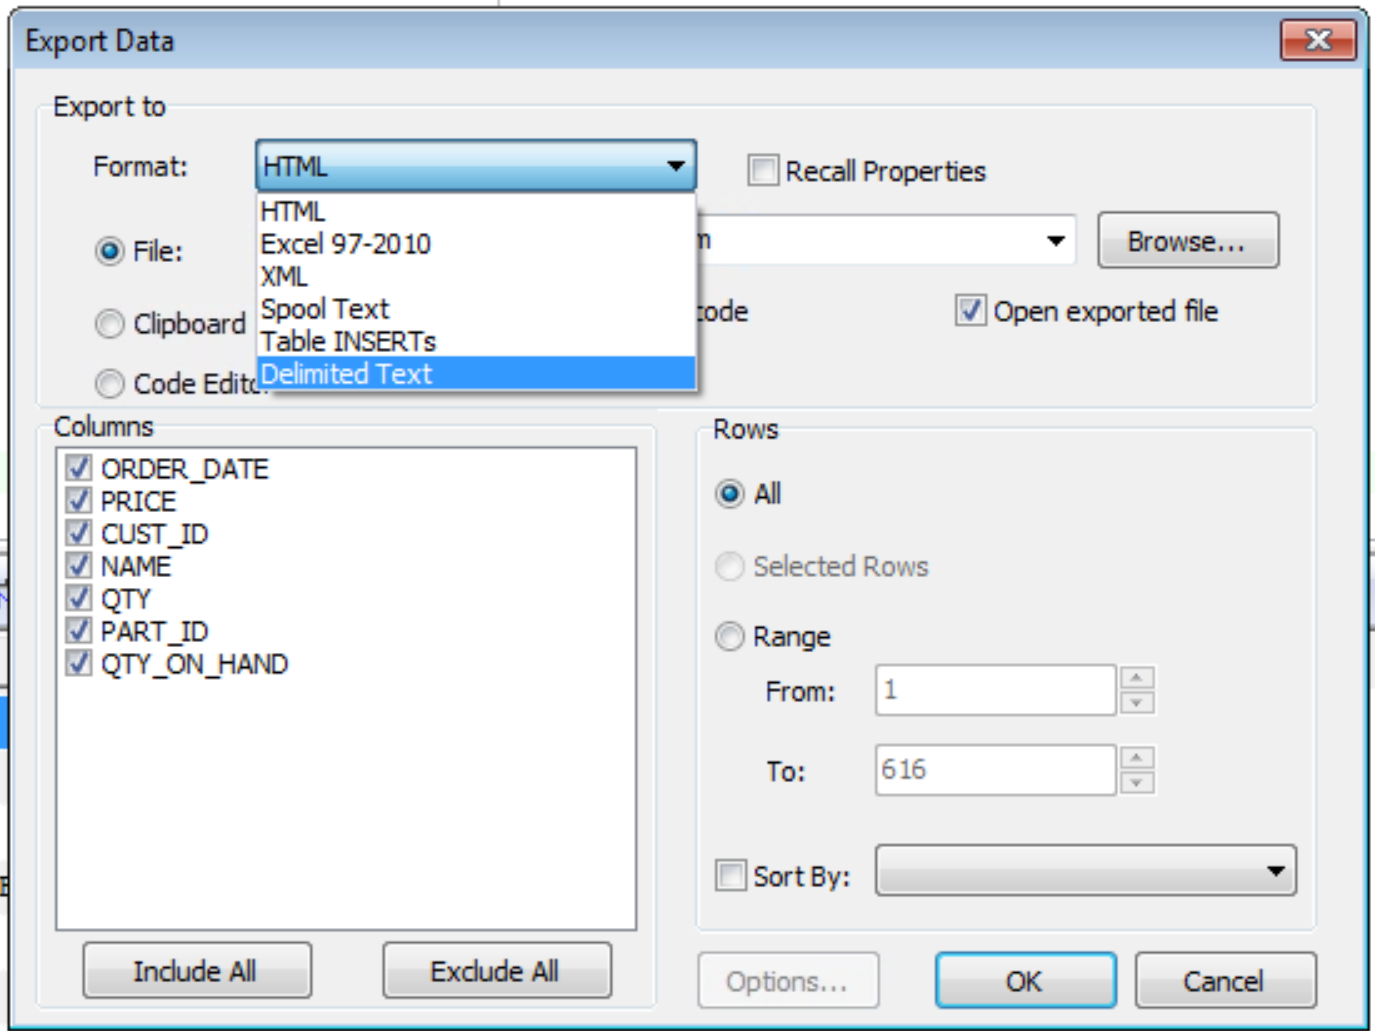 Exporting Data With SQL Navigator